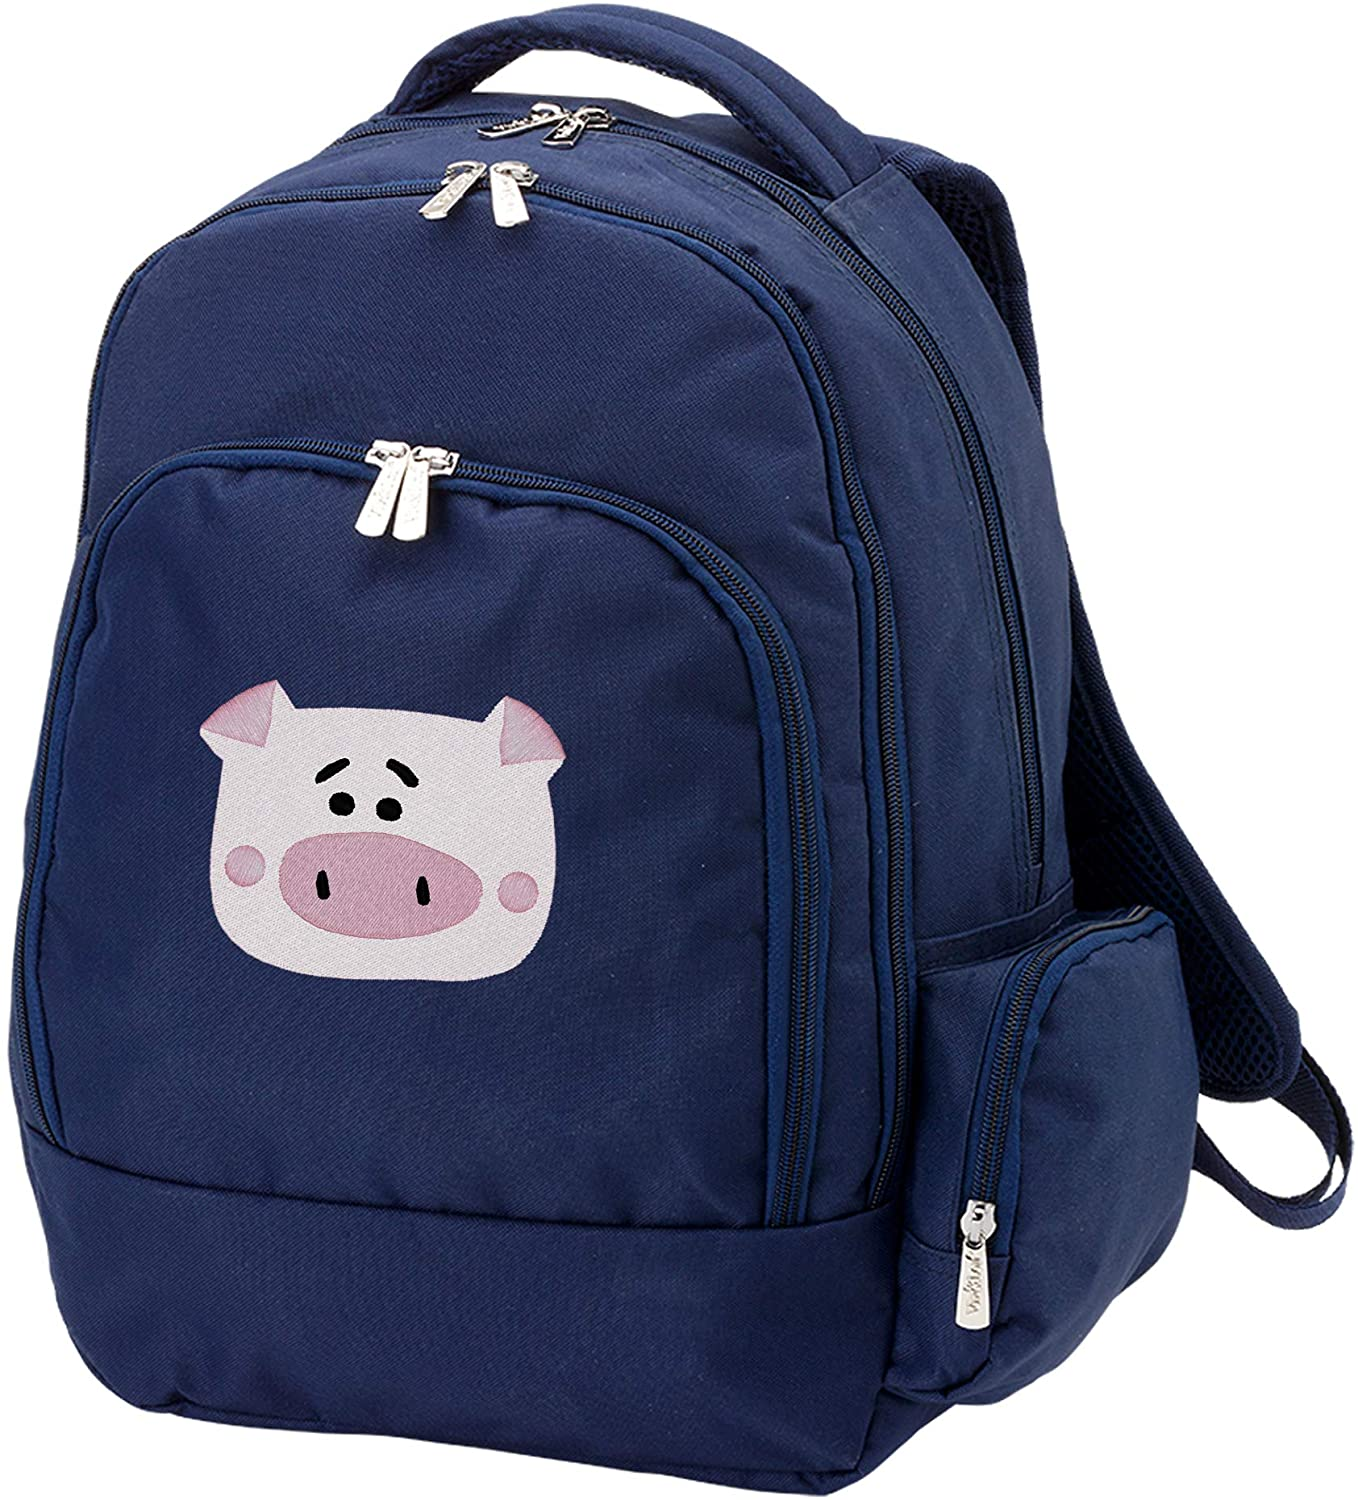 Personalized Kids Backpack with Cute Animal Design | Back to School Kids Gift(Pig/navy)